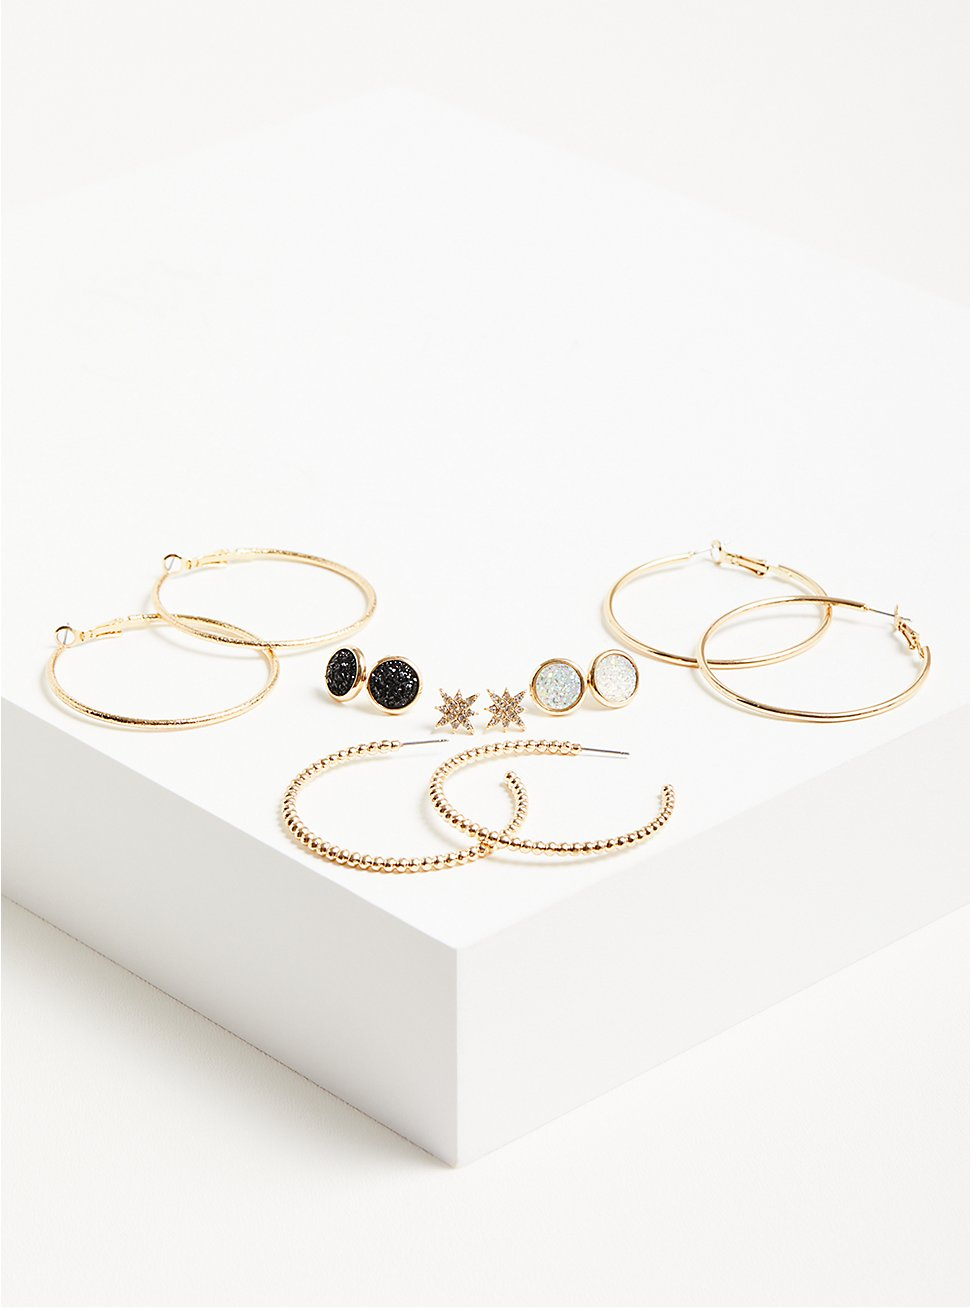 Plus Size Hoops with Black Faux Moonstone Studs Set of 6 - Gold Tone, , hi-res